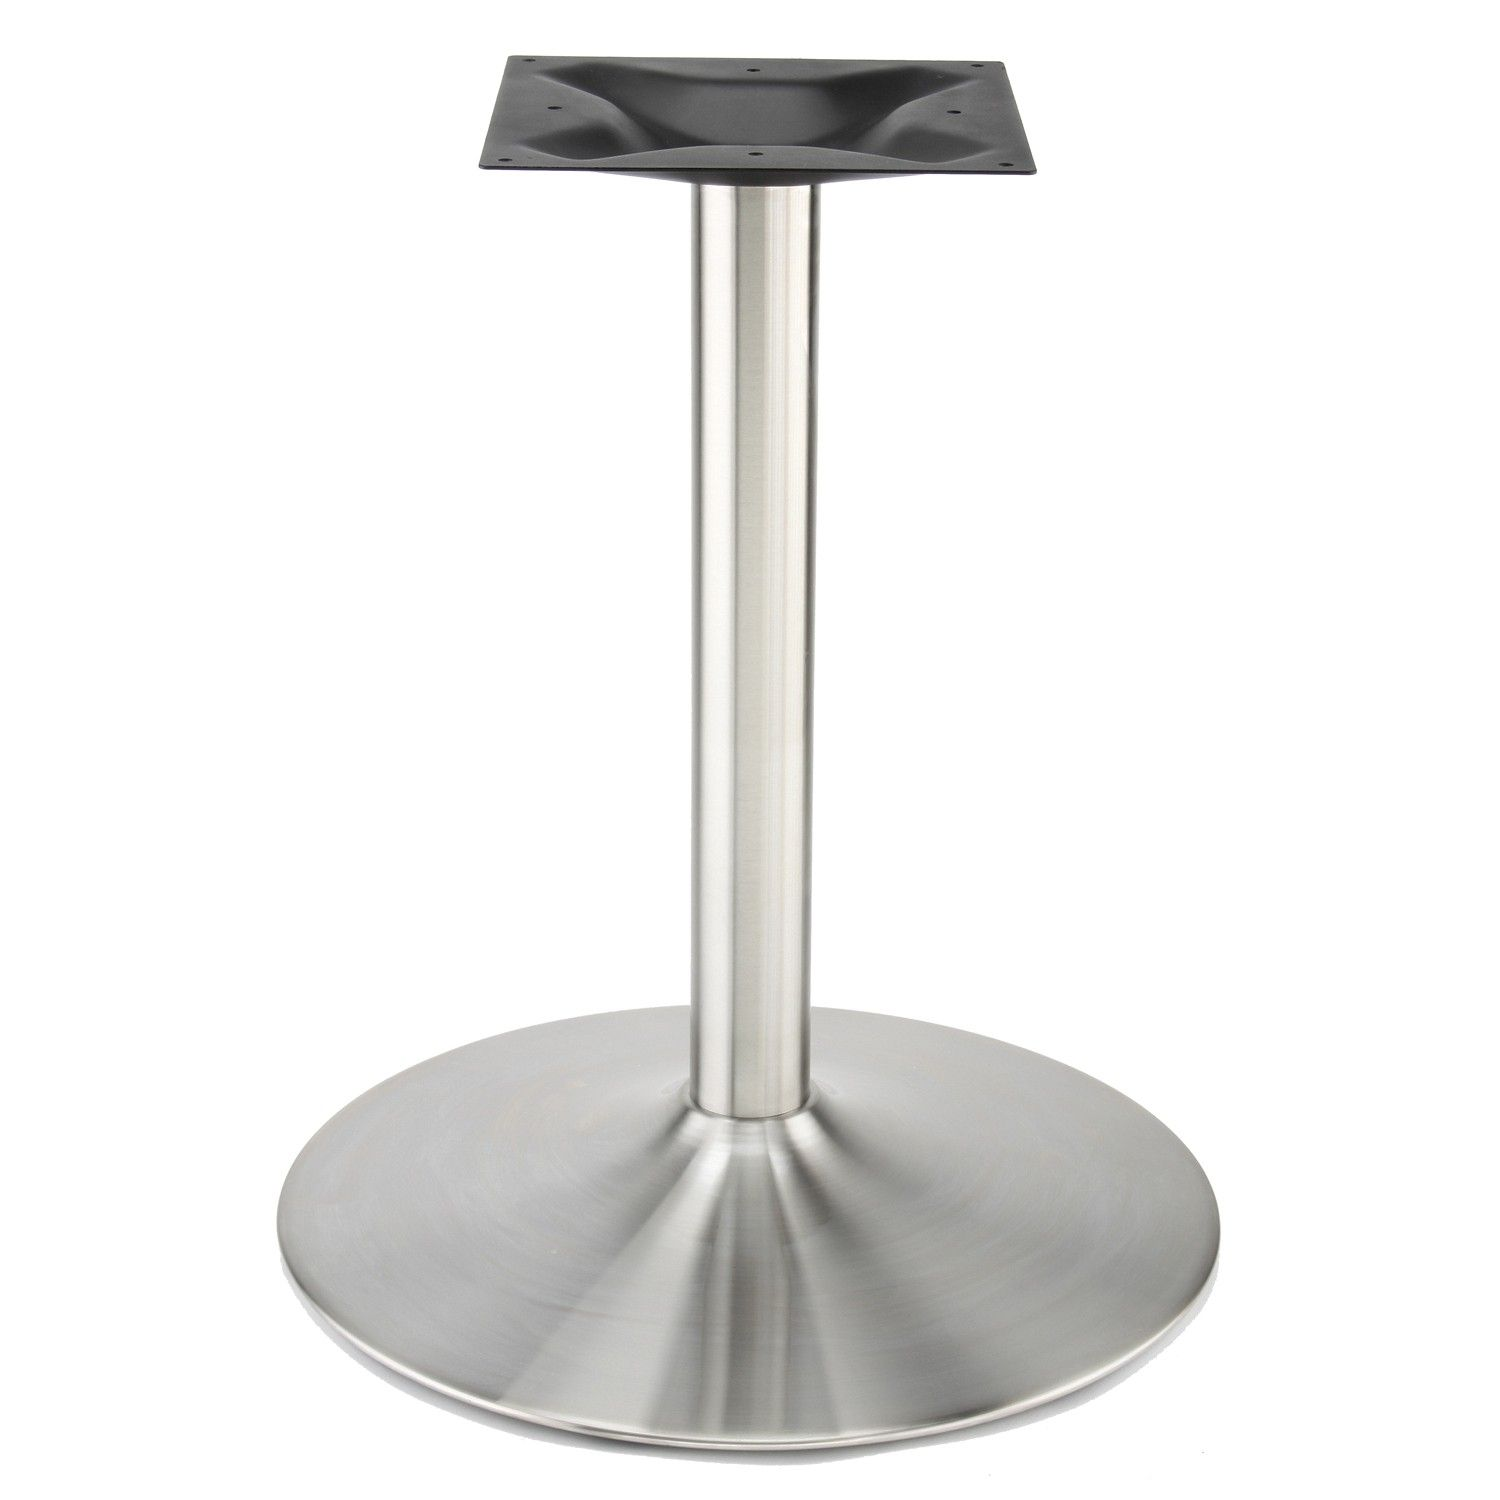 Exceptional RWG600   Stainless Steel Table Base | Tablebases.com   Quality Table Bases,  Metal